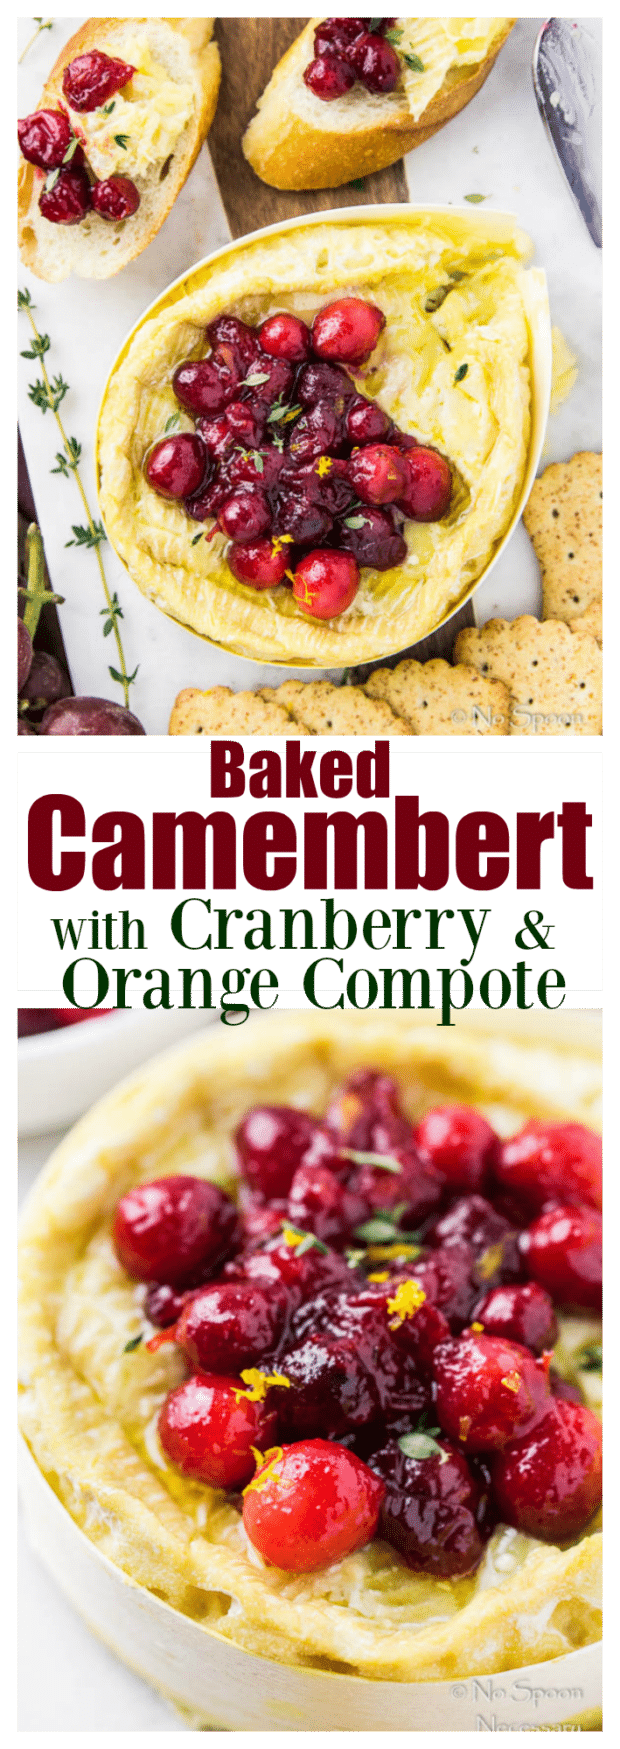 Baked Camembert with Cranberry & Orange Compote